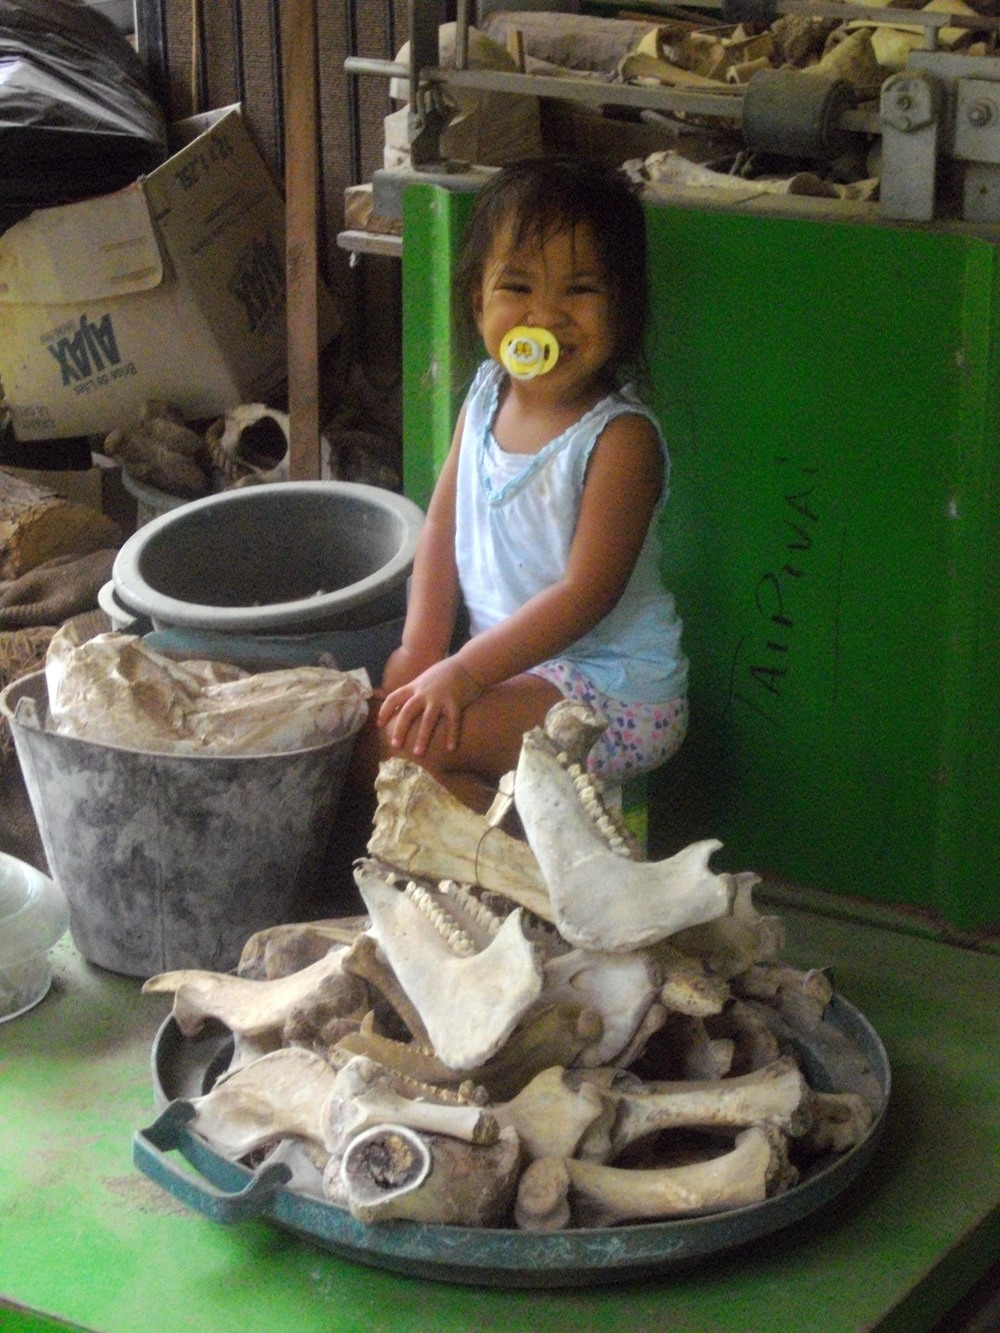 "Pic of the month: ""Bone to be a Princess."" Nuku Hiva's resident carver and sculptor has a wee one who likes to play with bones, but they still hold no candle to her trusty pacifier. Her dad uses these old animal bones to craft jewelry items with a dentist's tool, like the mini tiki shown in the next pic. The local Catholic churches commission him to carve hard-wood sculptures, such as the statue of St. Joseph and Jesus."